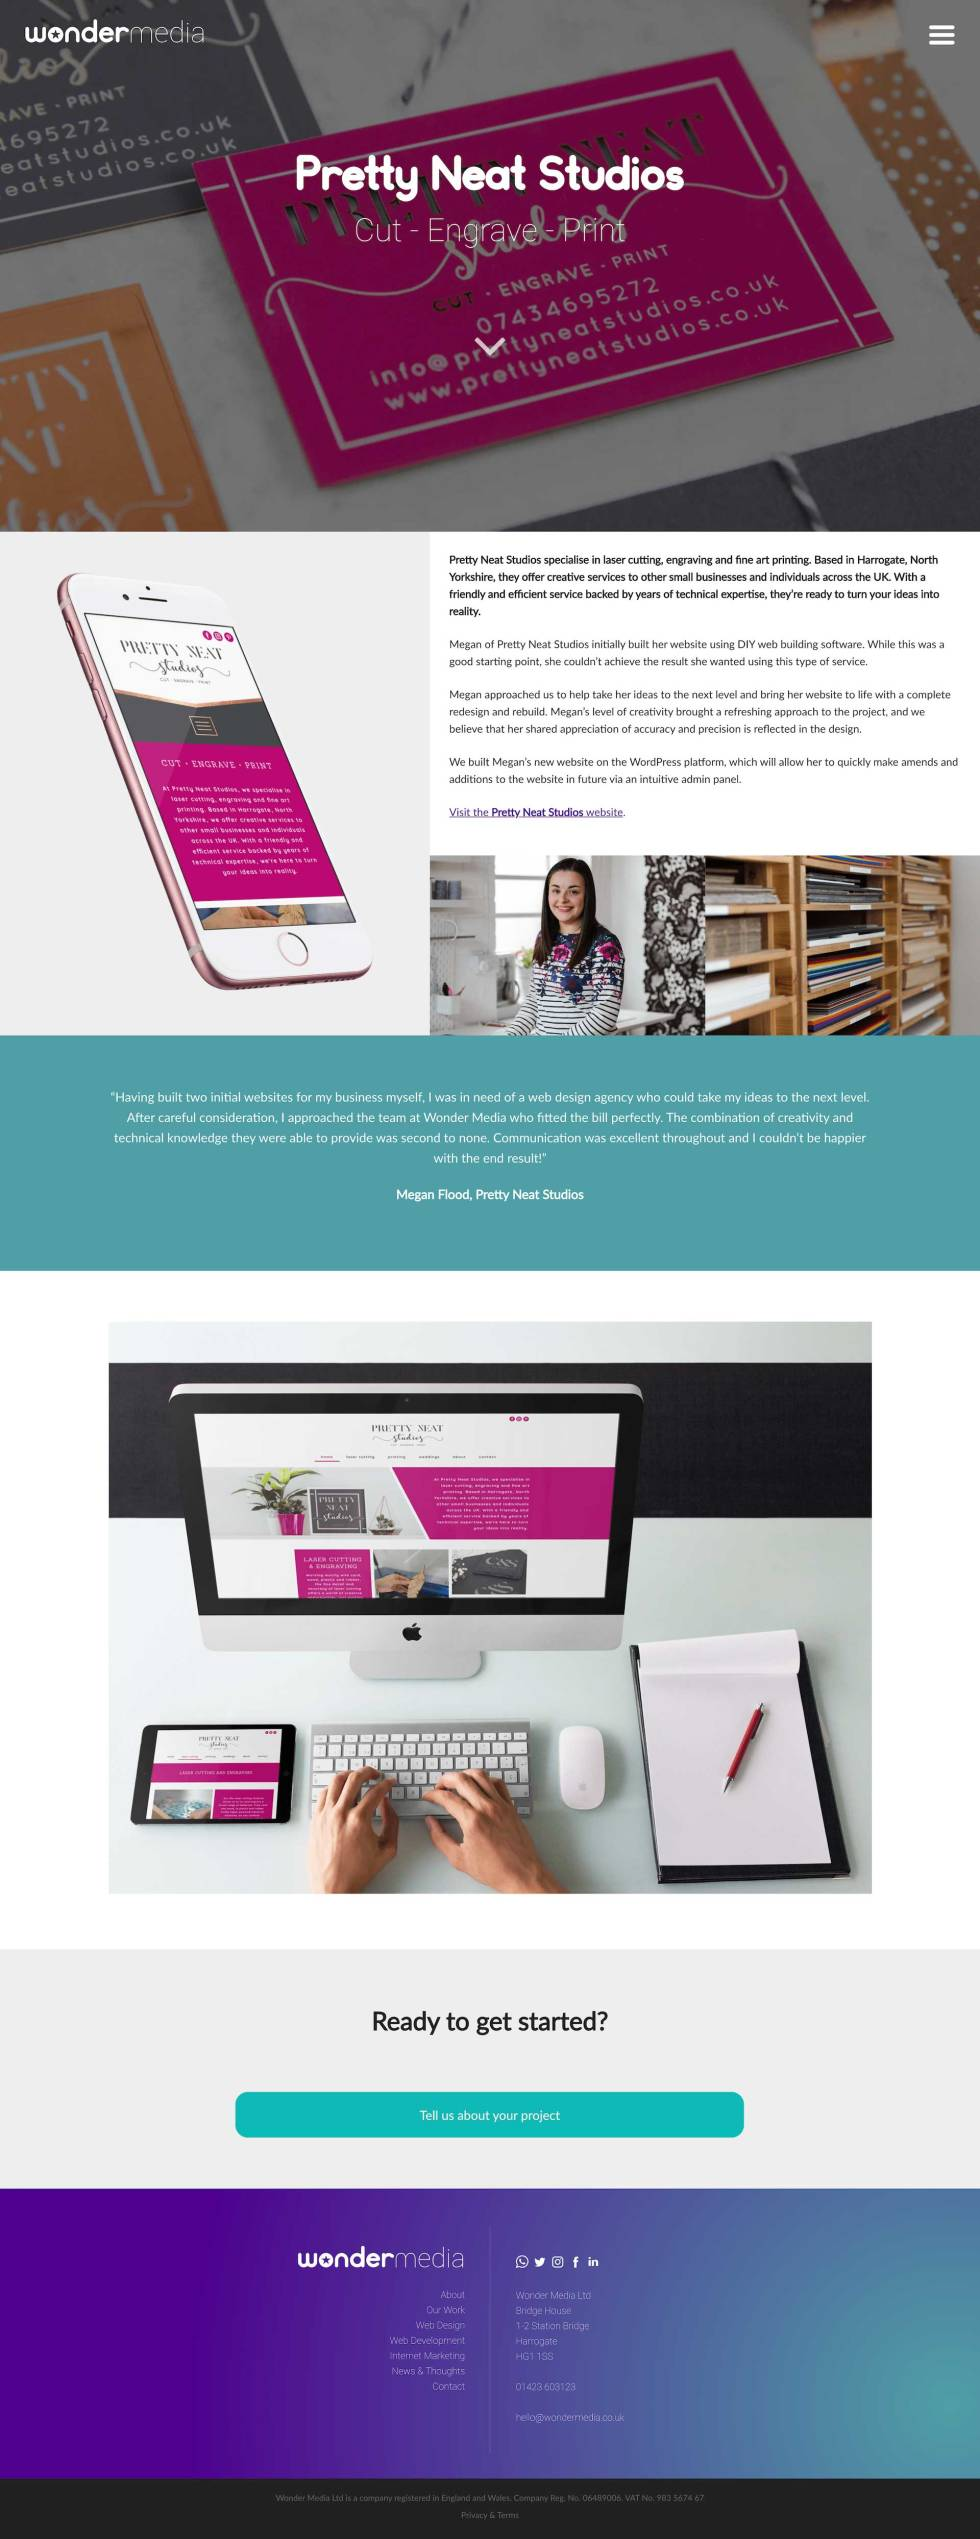 Email template. Page can be split into six parts. At the top, image of yellow, pink and grey branded cards sitting on a table slightly faded. White logo at the center of the image. Below, iPhone screen displays mobile version of website homepage. To the right of the iPhone, a small paragraph with black lowercase text against a white background. Below the text, two photos side by side (a woman smiling and a bookshelf) Below the iPhone and text with accompanying images, another image of aerial view of person sitting at Mac desktop with desktop version of website. Below this, green contact button along with more information and branding.